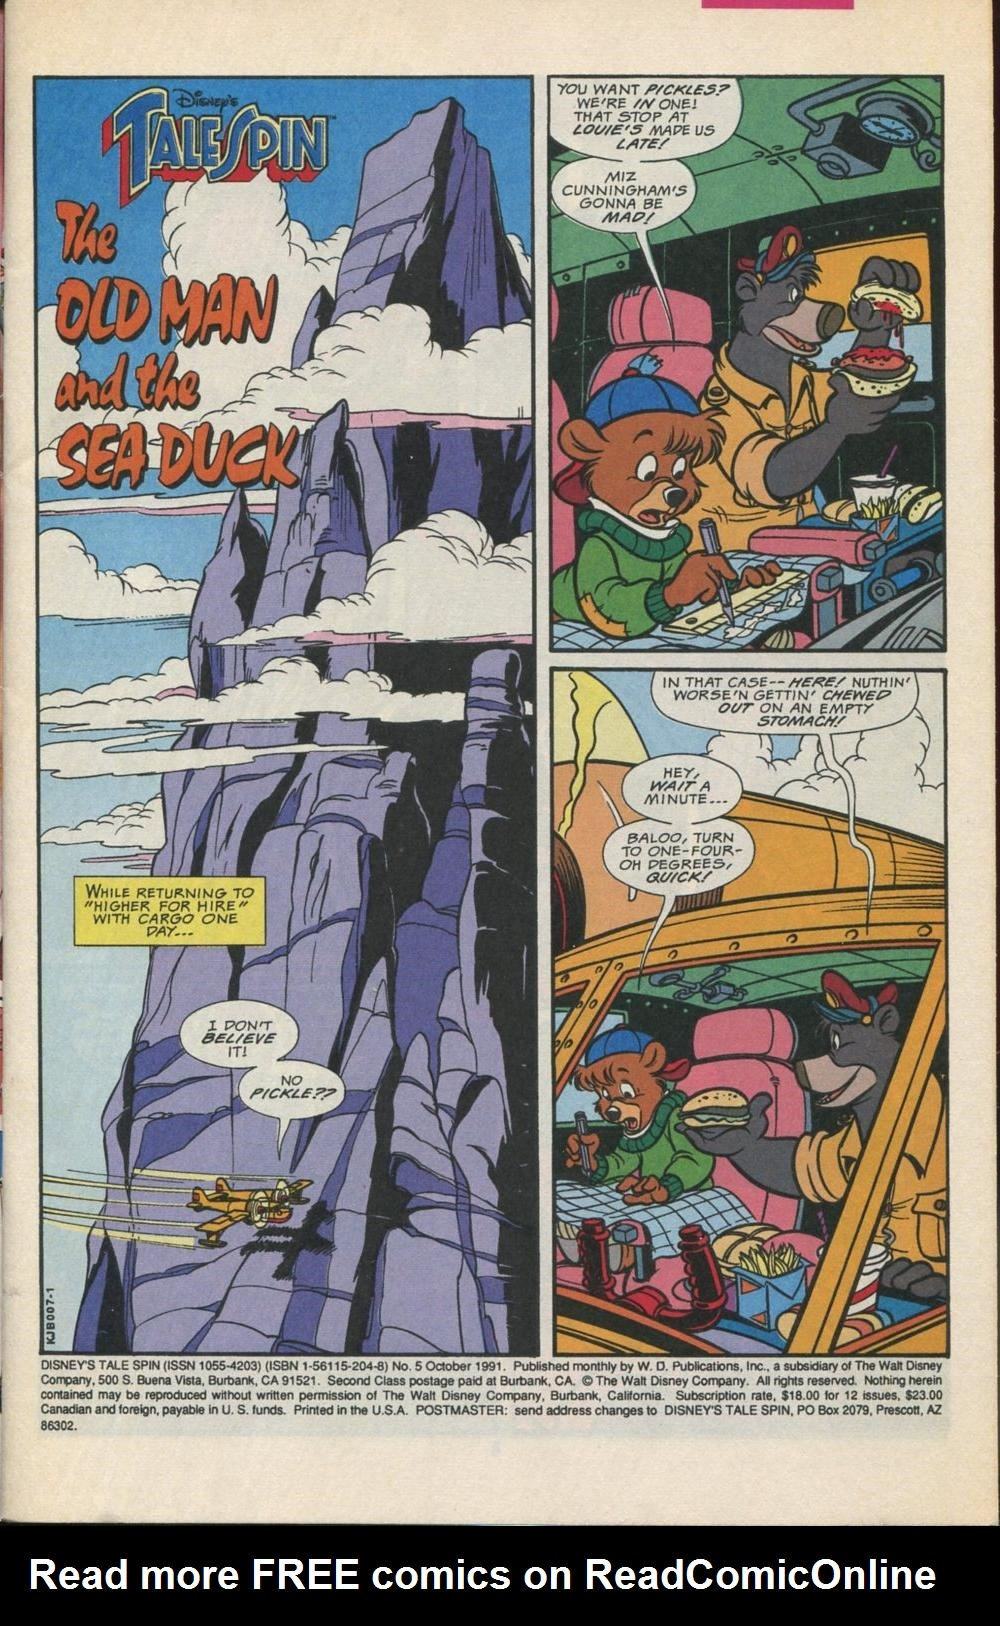 Read online Disney's Tale Spin comic -  Issue #5 - 2